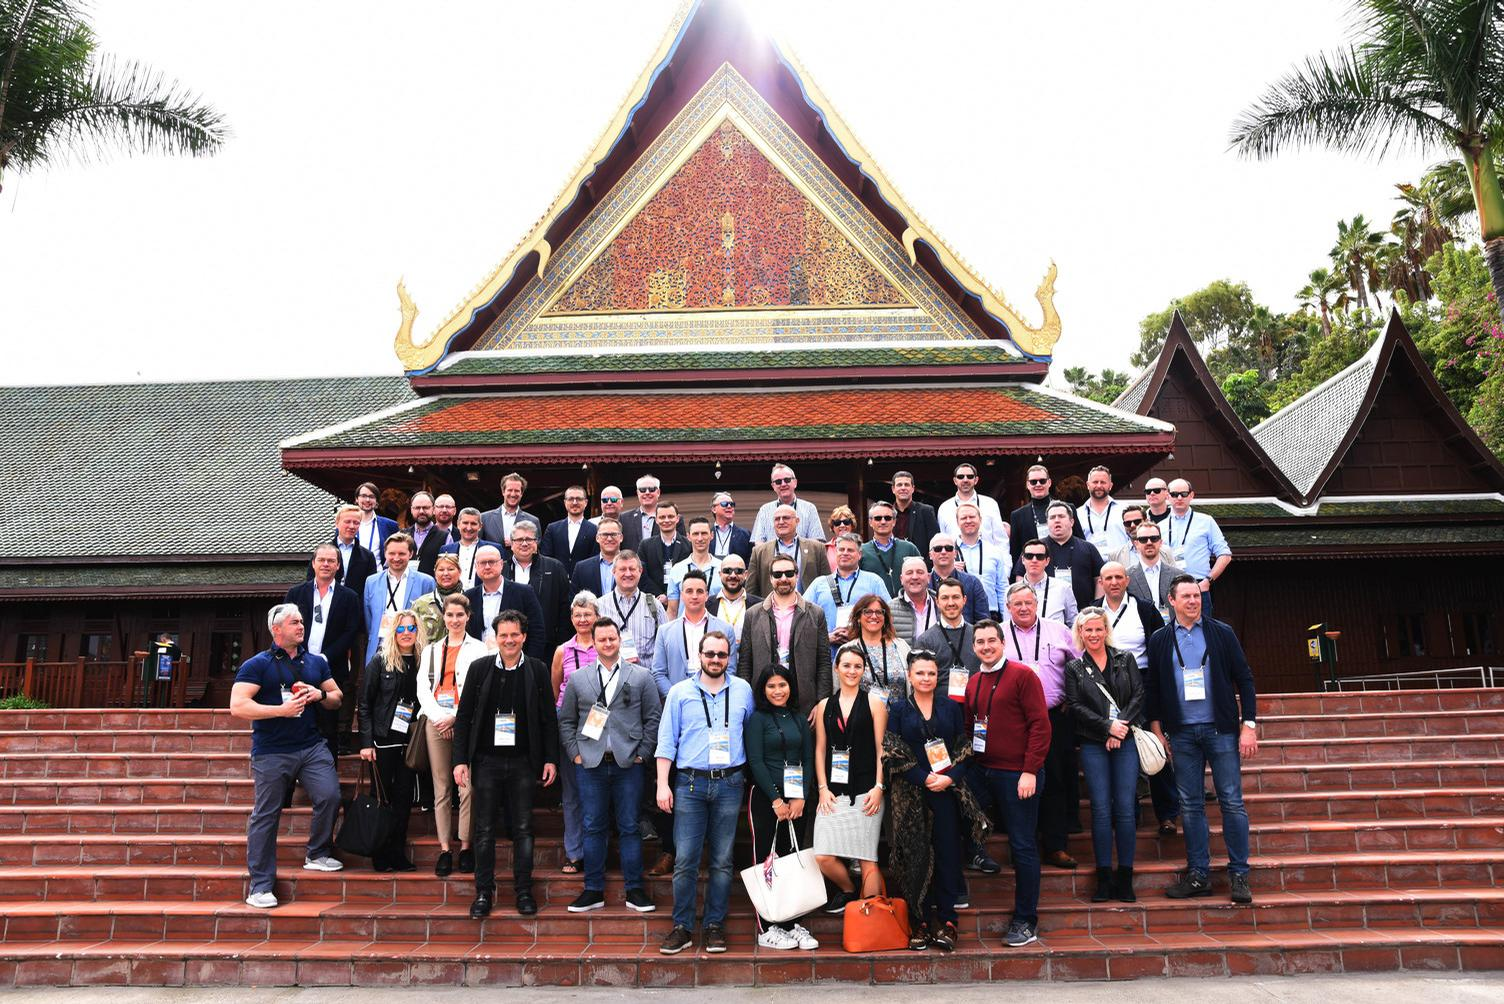 More Than 60 Attractions Professionals Attended The IAPPA Winter Forum In Canary Islands IAAPA